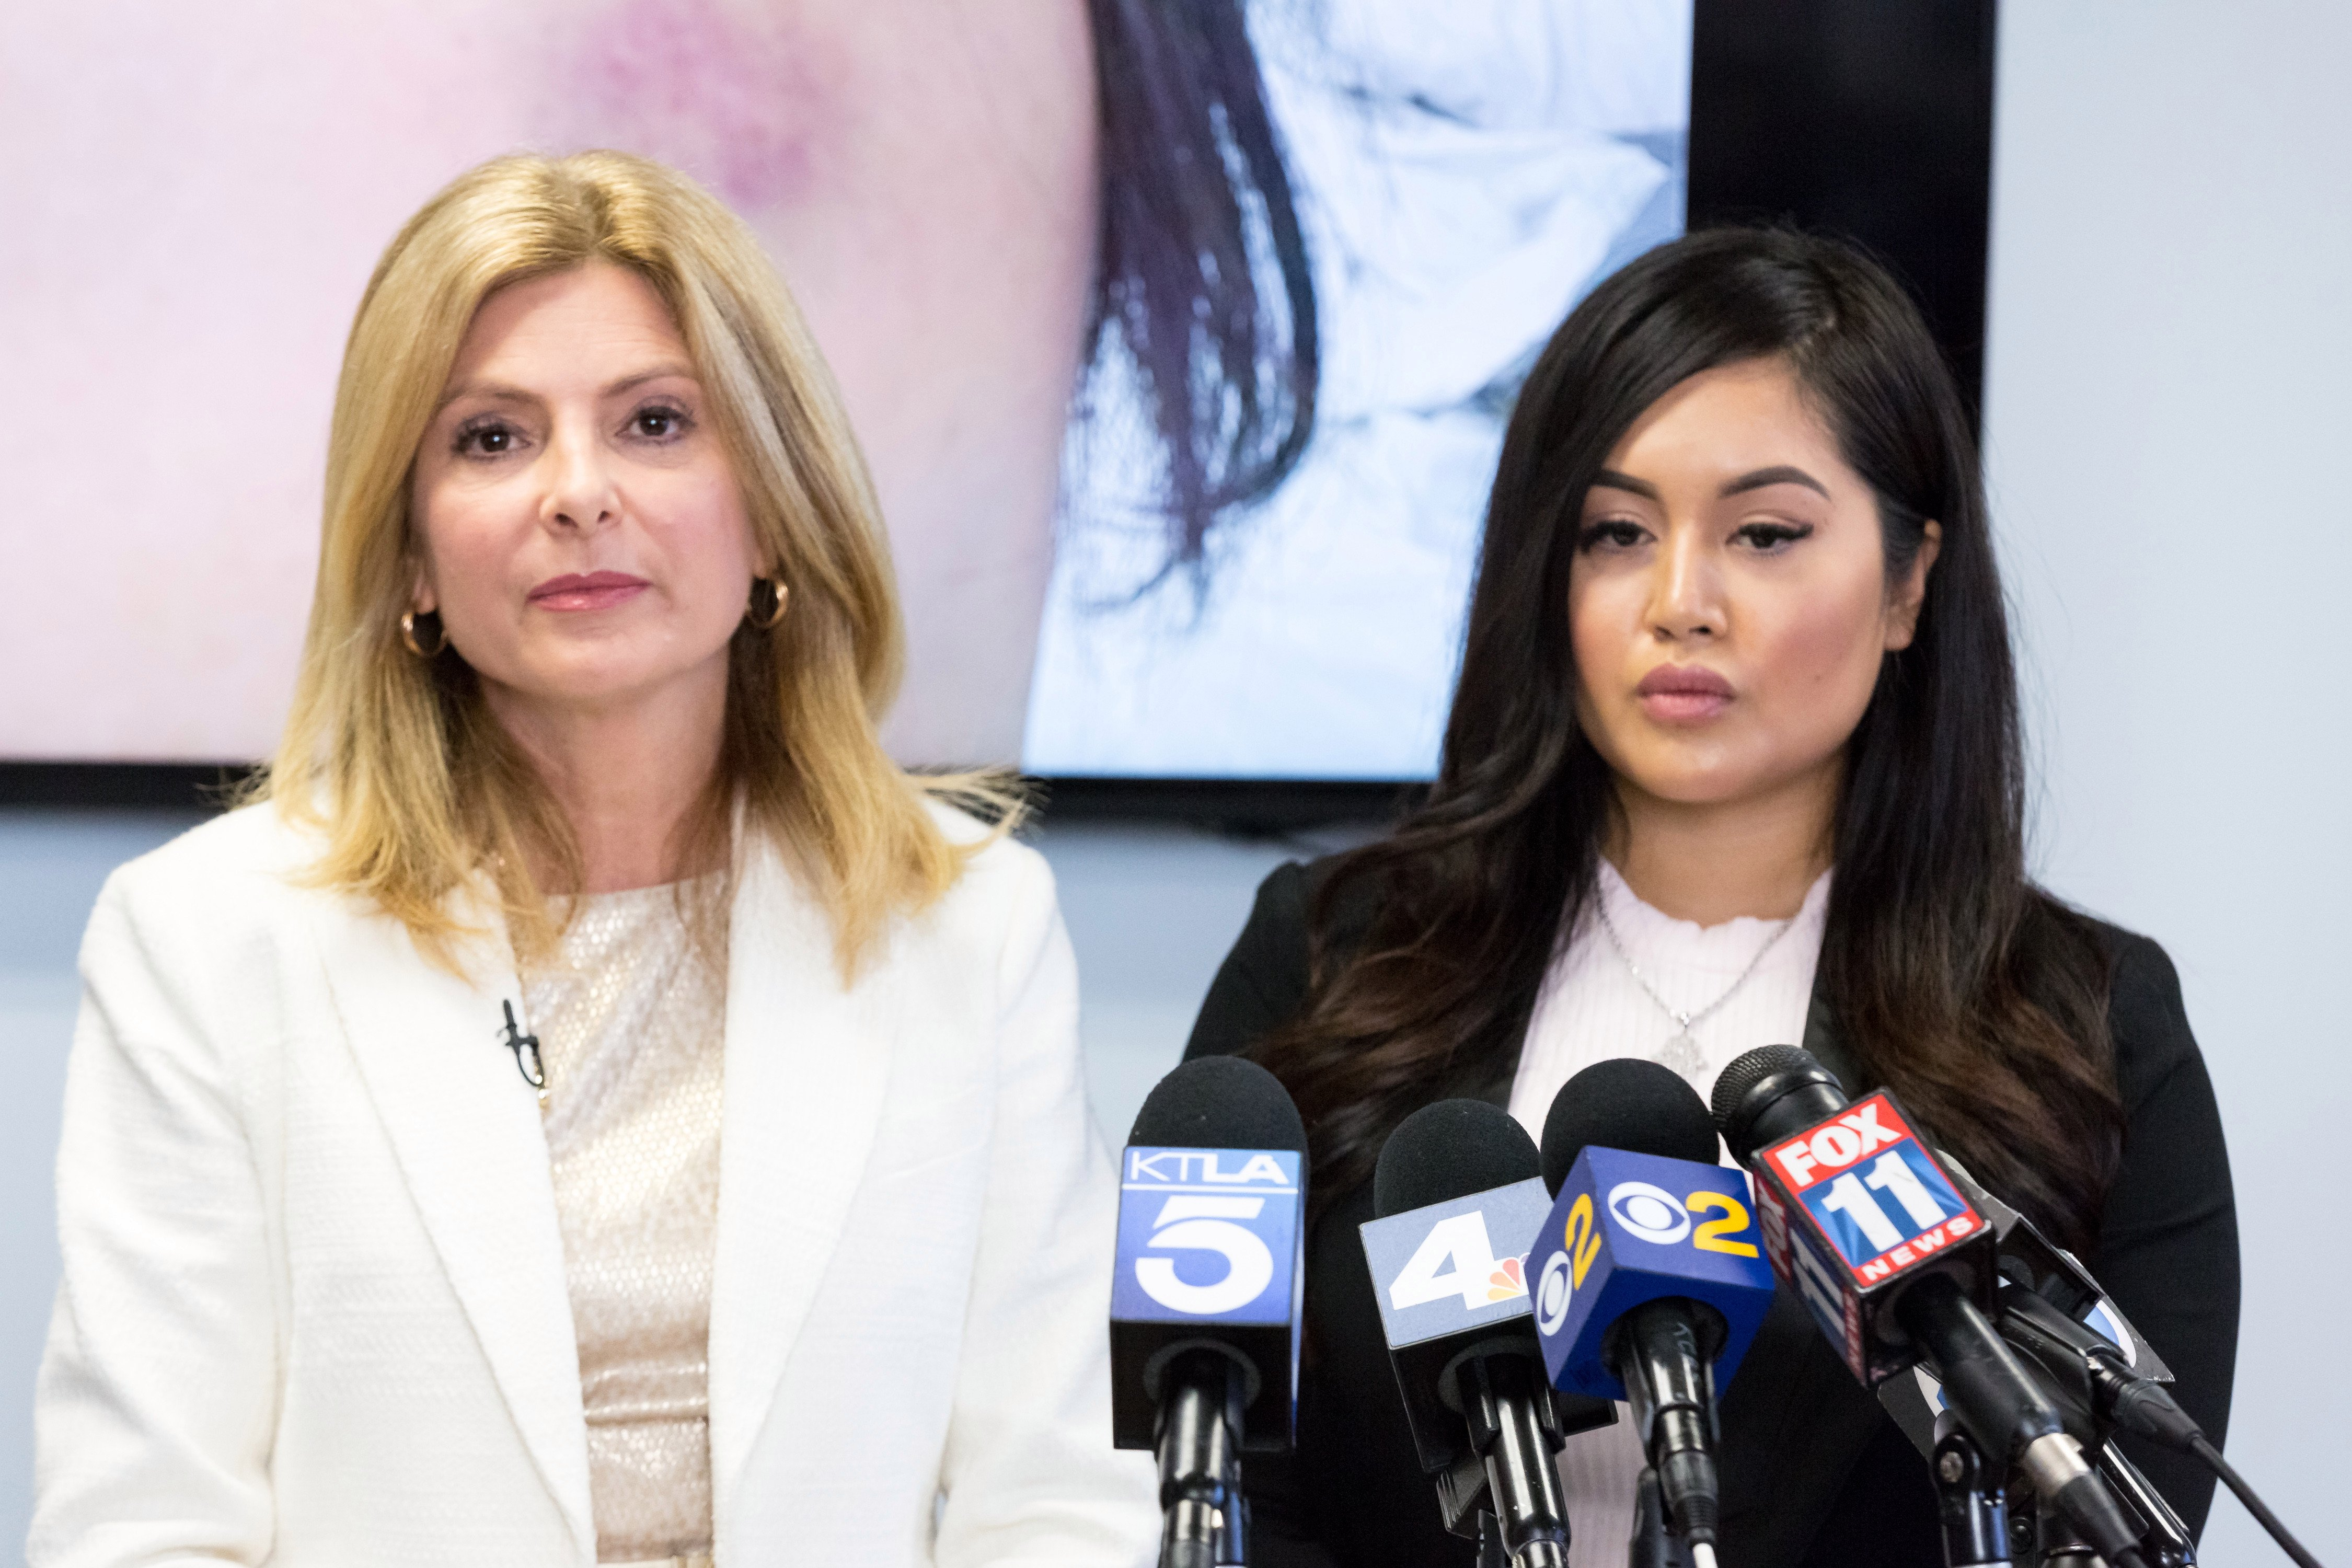 Trey Songz's alleged assault victim speaks out